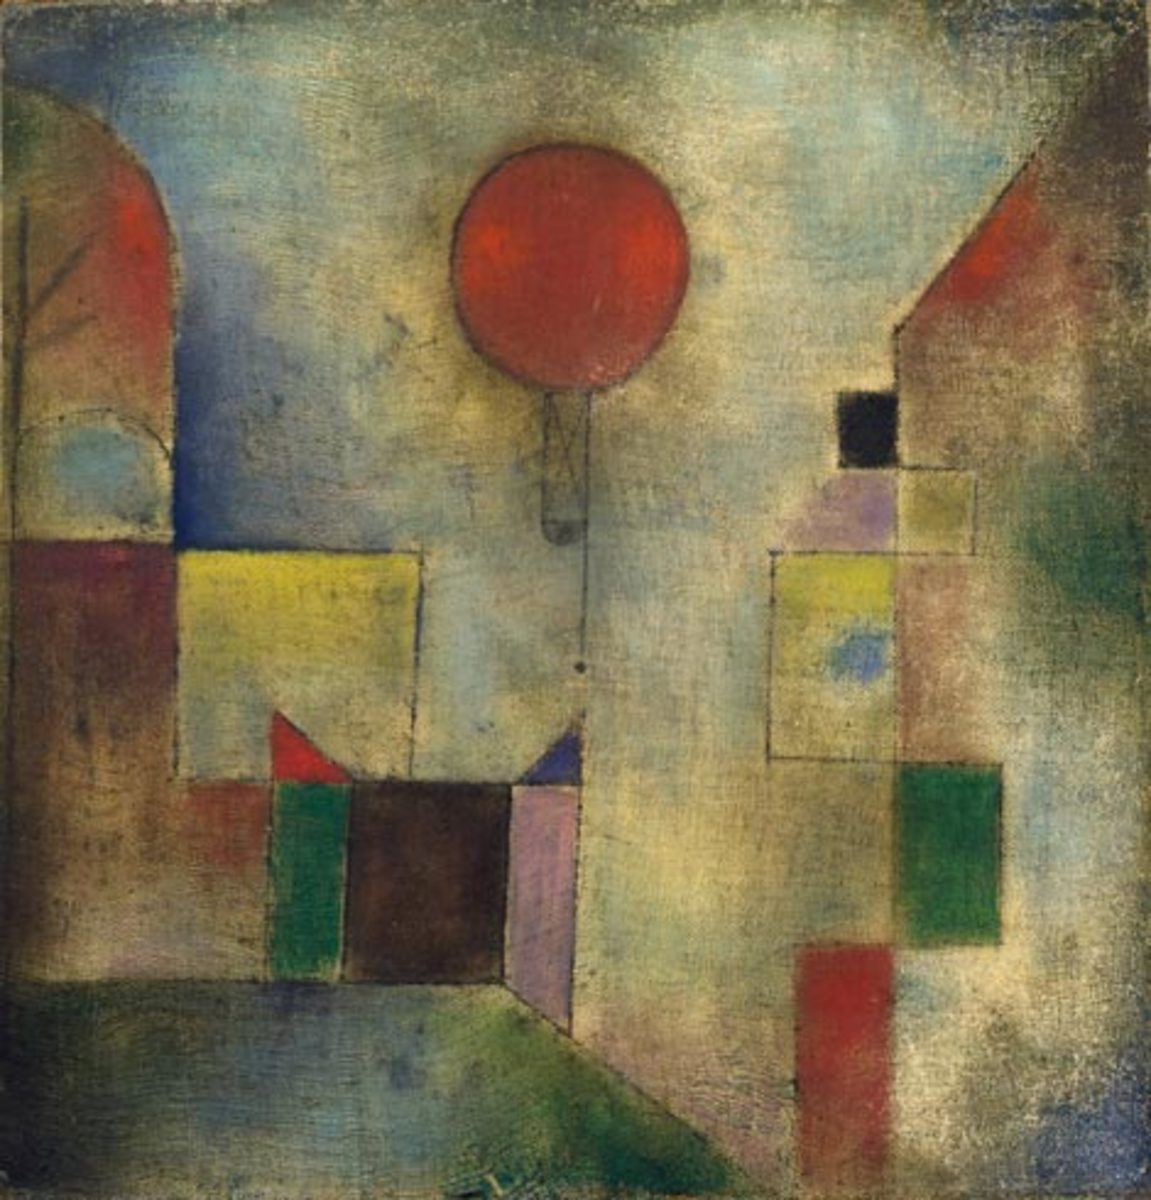 Klee was influenced by many of the contemporary art movements of his day and also made a profound study of color theory.